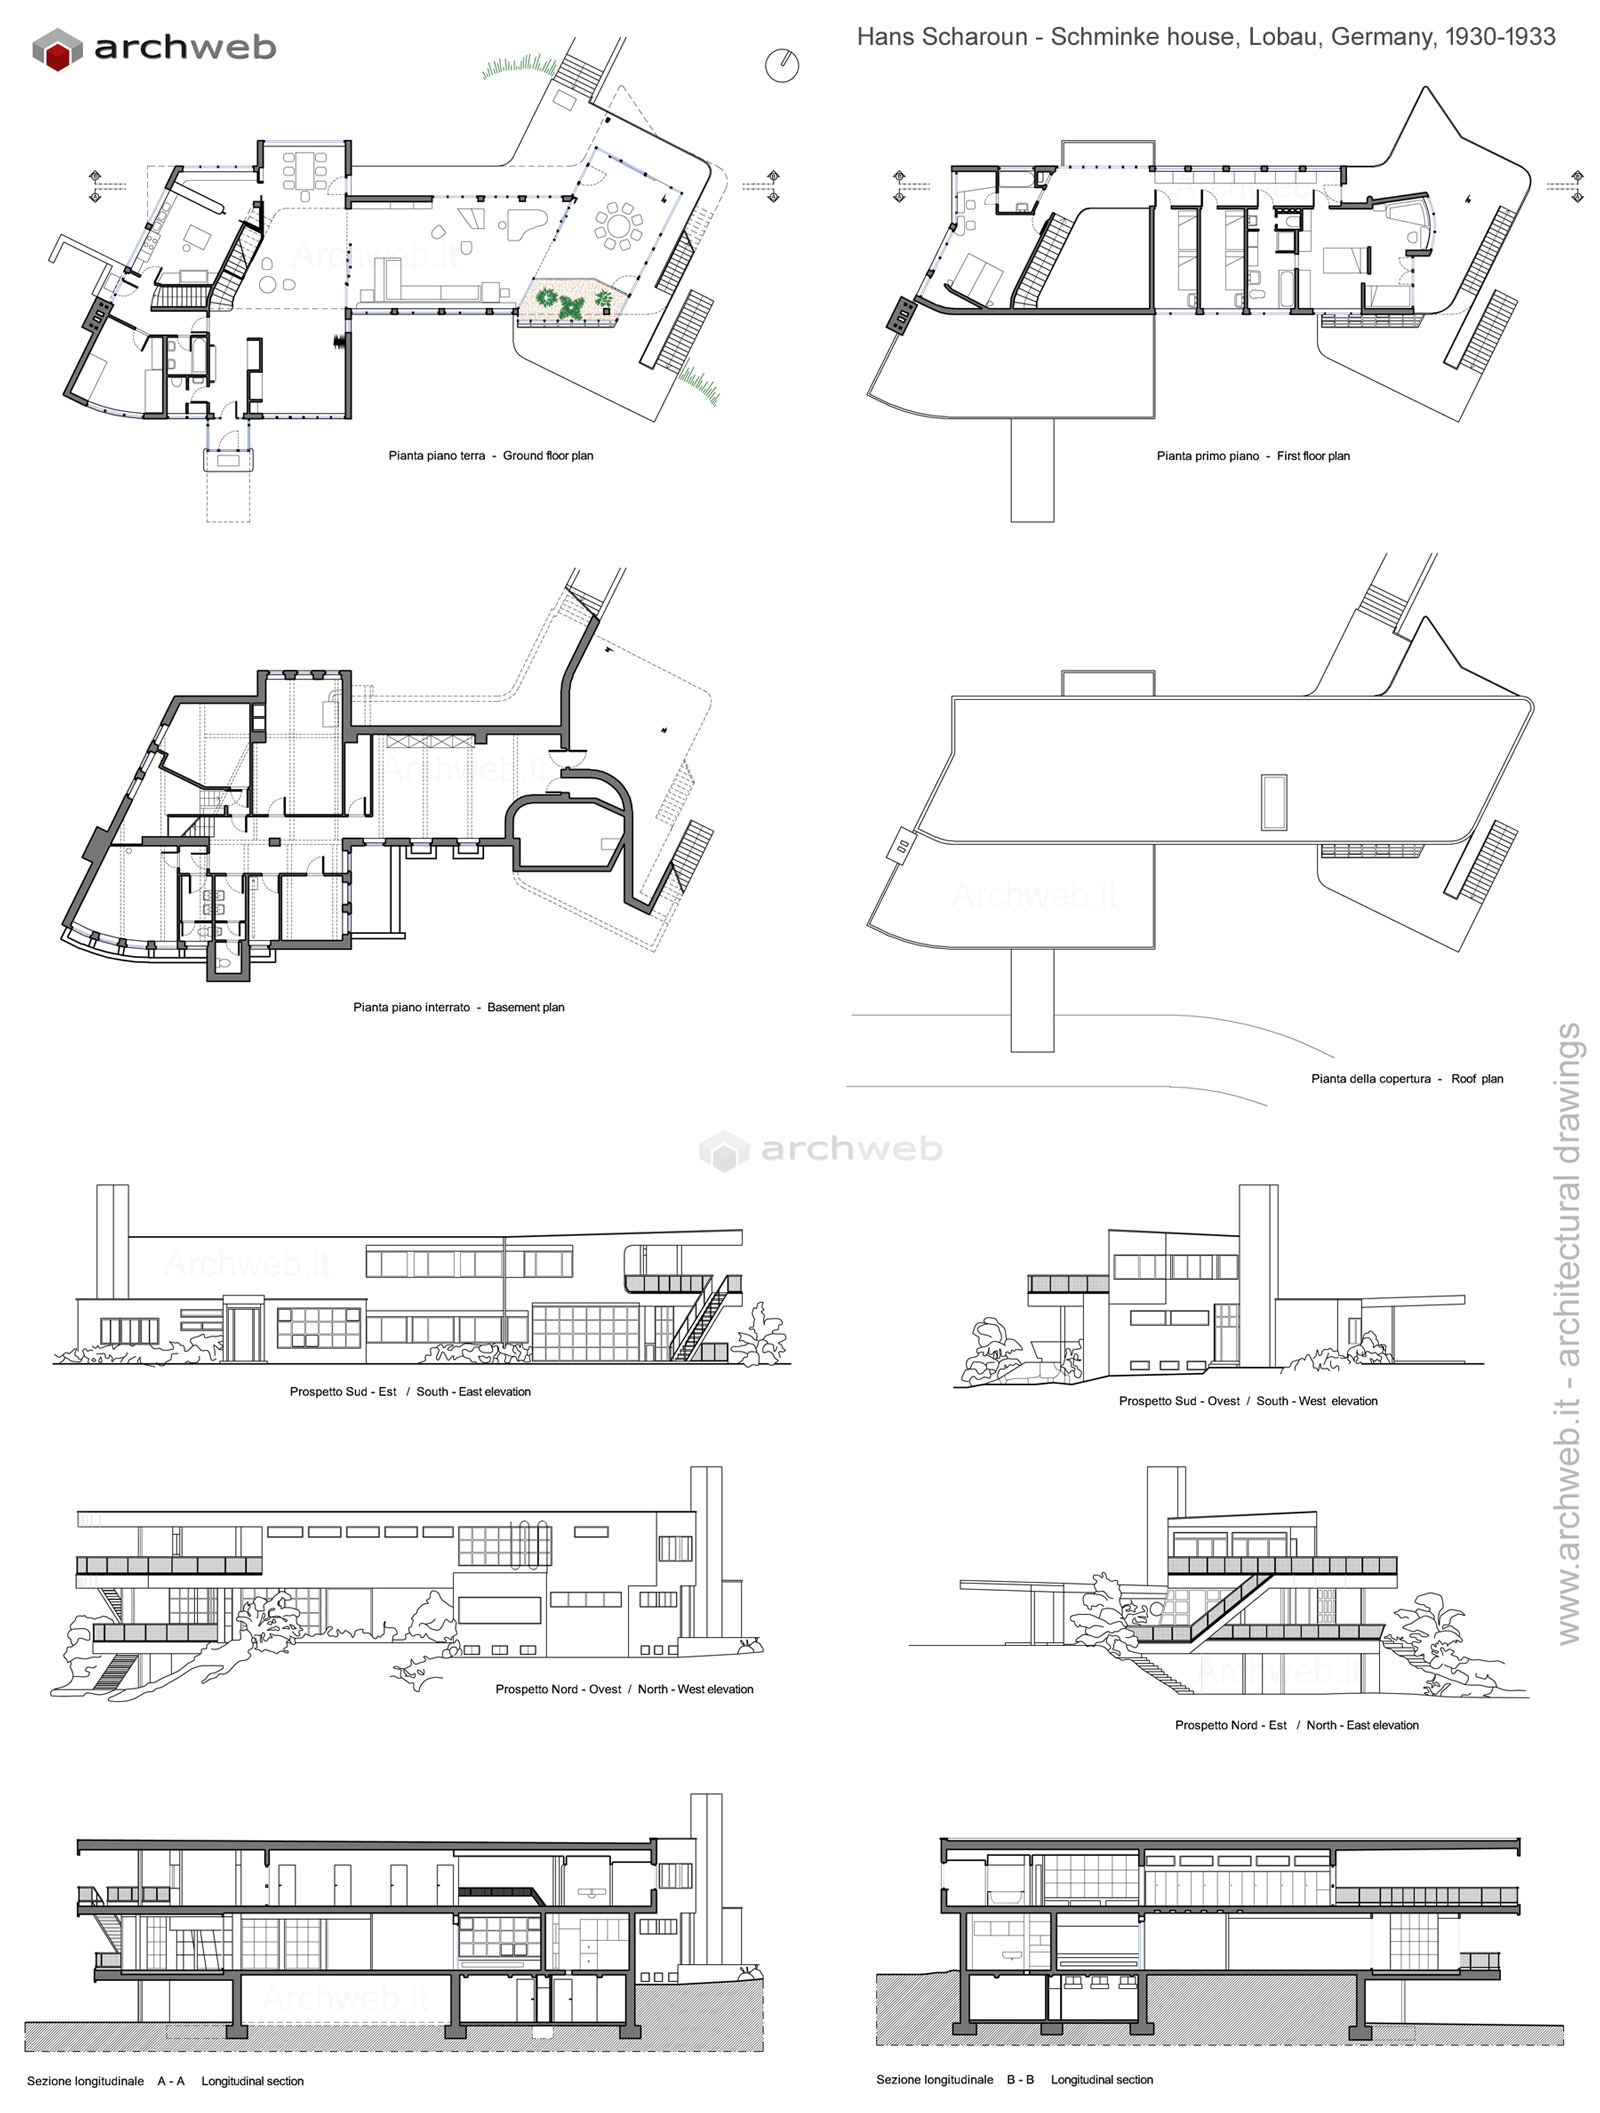 Schminke house scharoun dwg drawings for Www house plans com